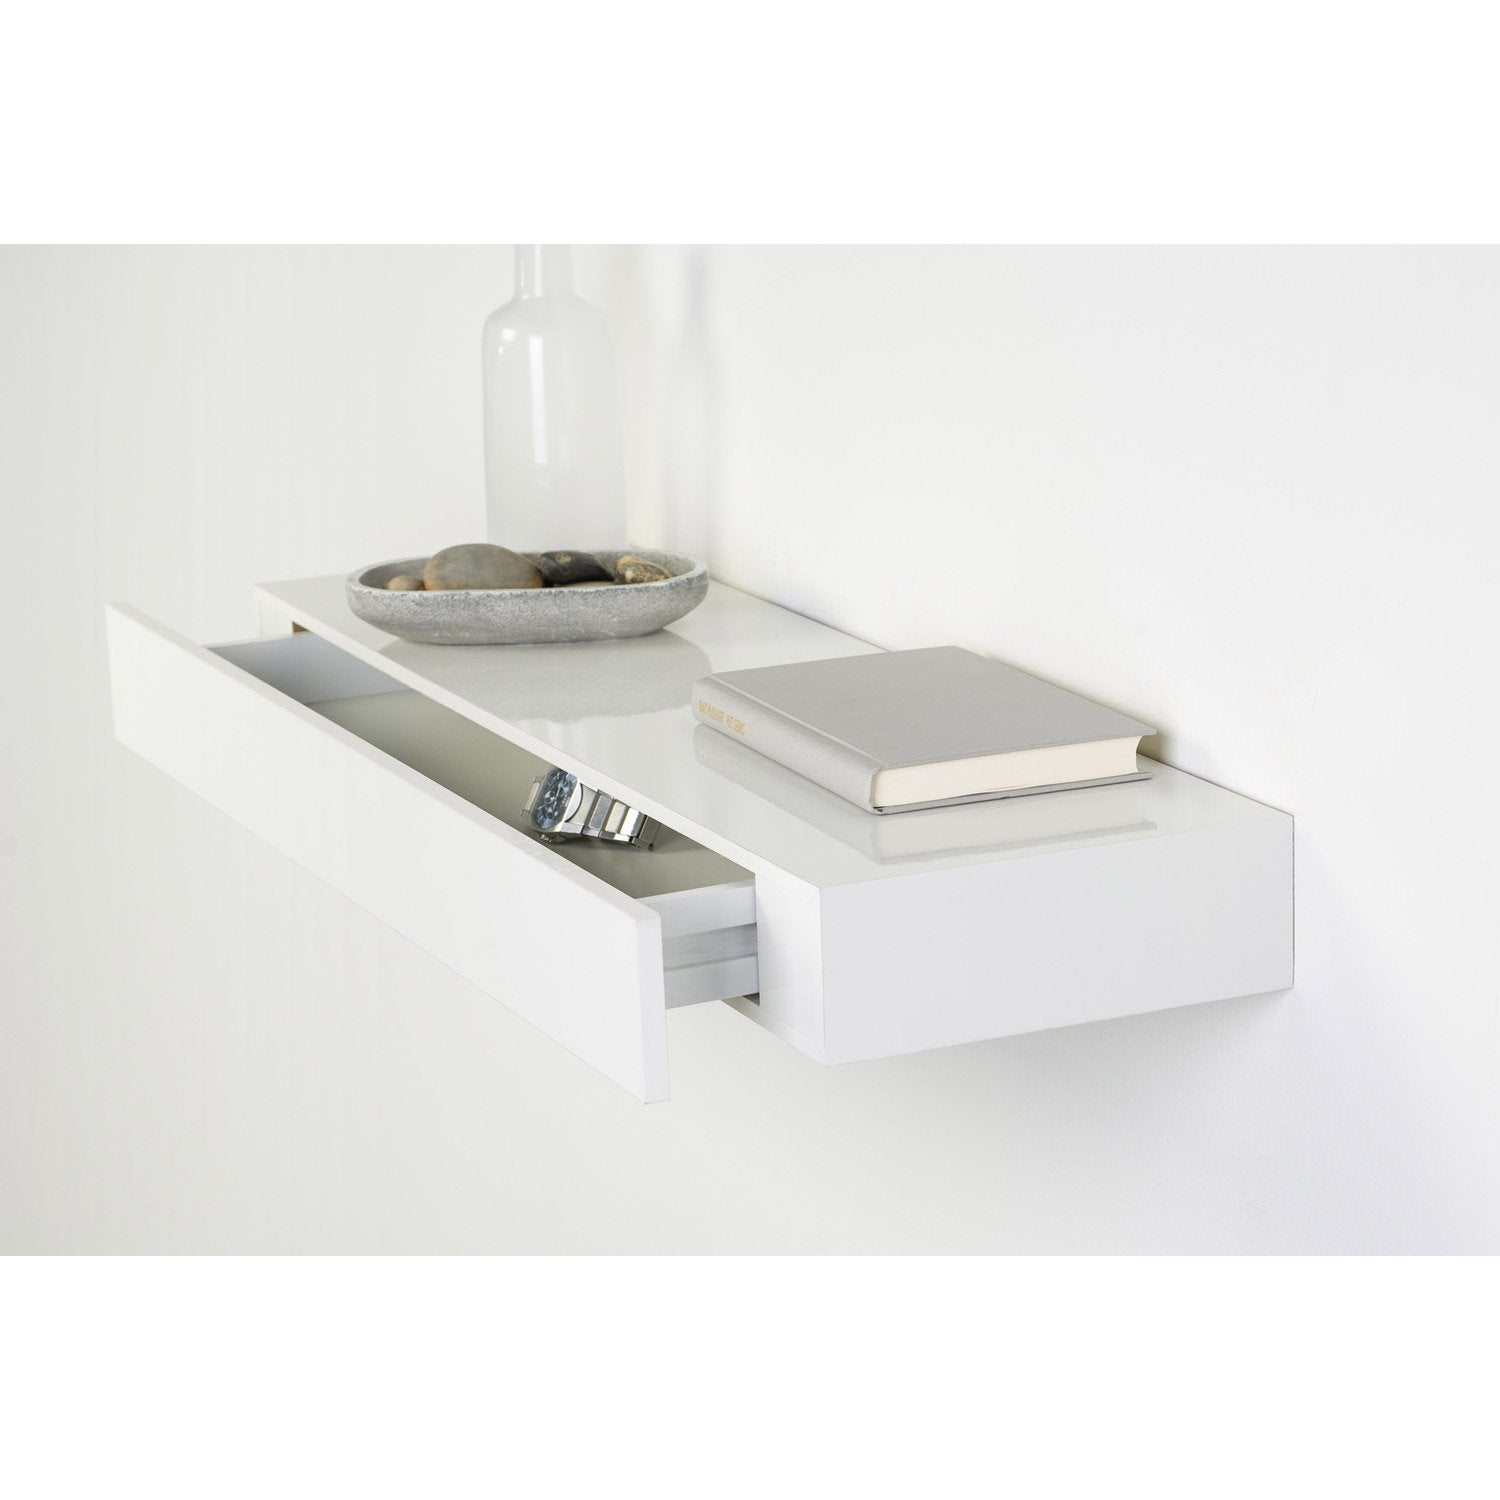 Etag re tiroir blanc l 40 x p 25 cm mm leroy merlin for Tiroir angle cuisine